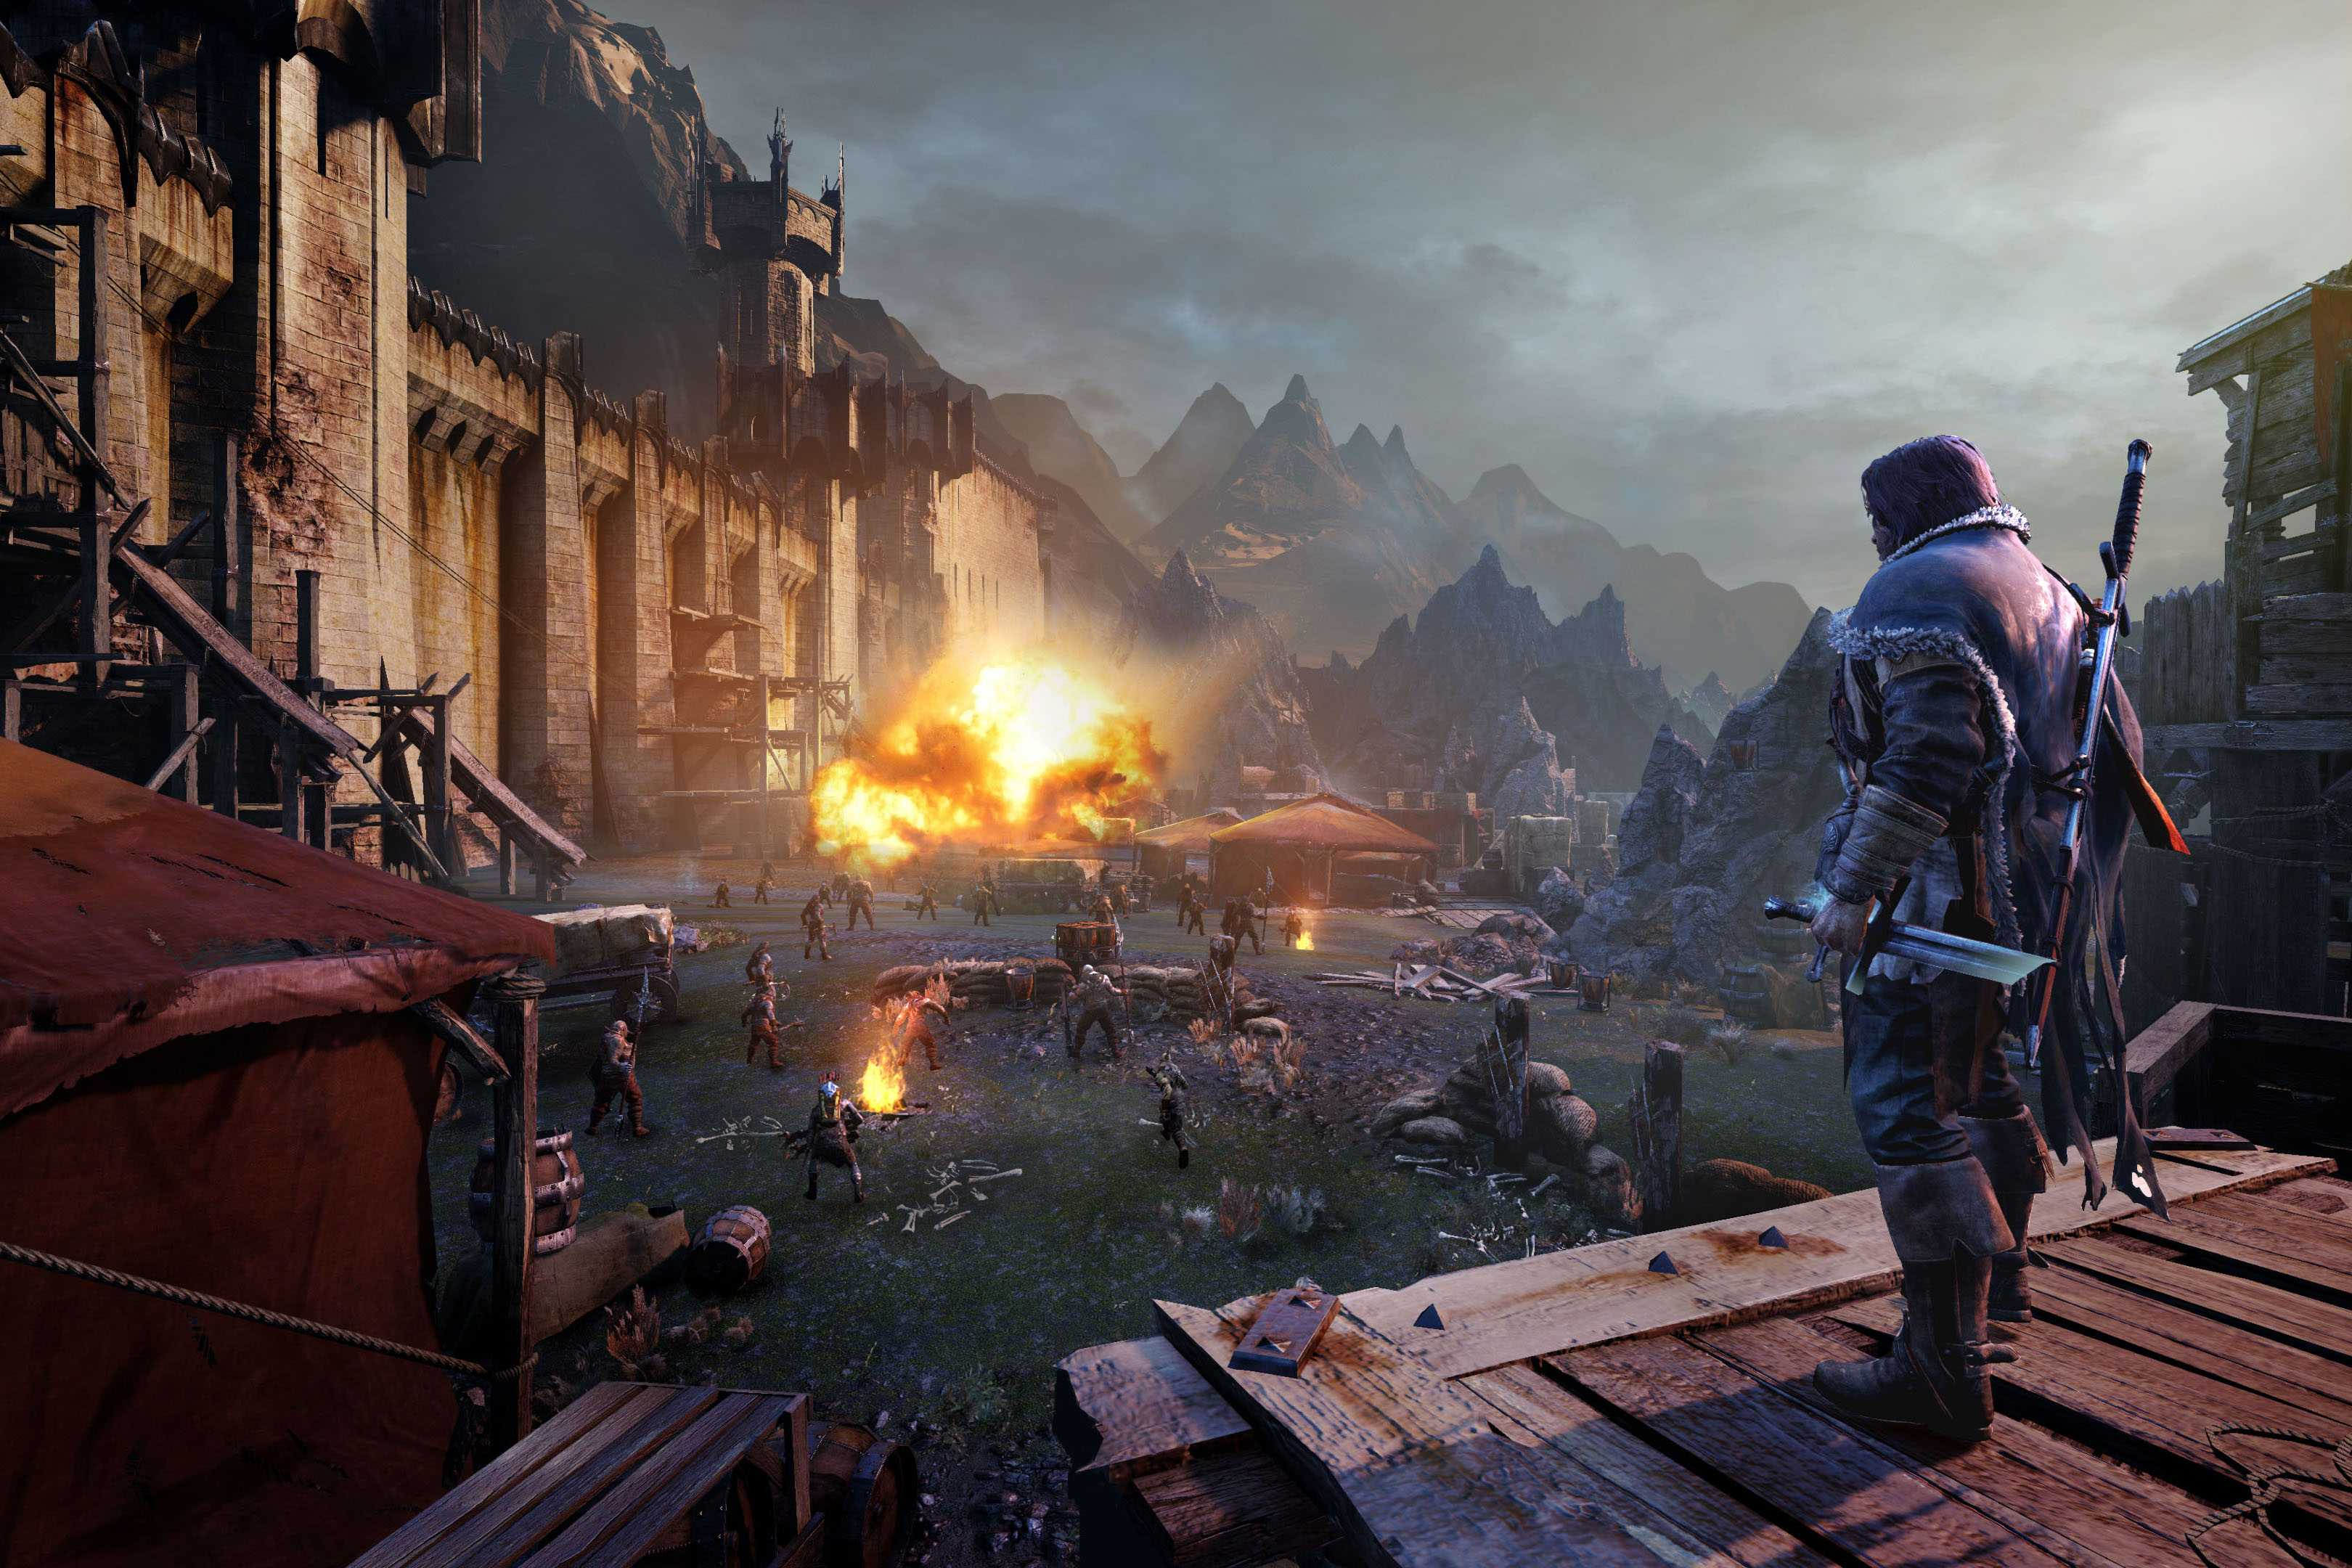 Screenshots of the Shadow of Mordor